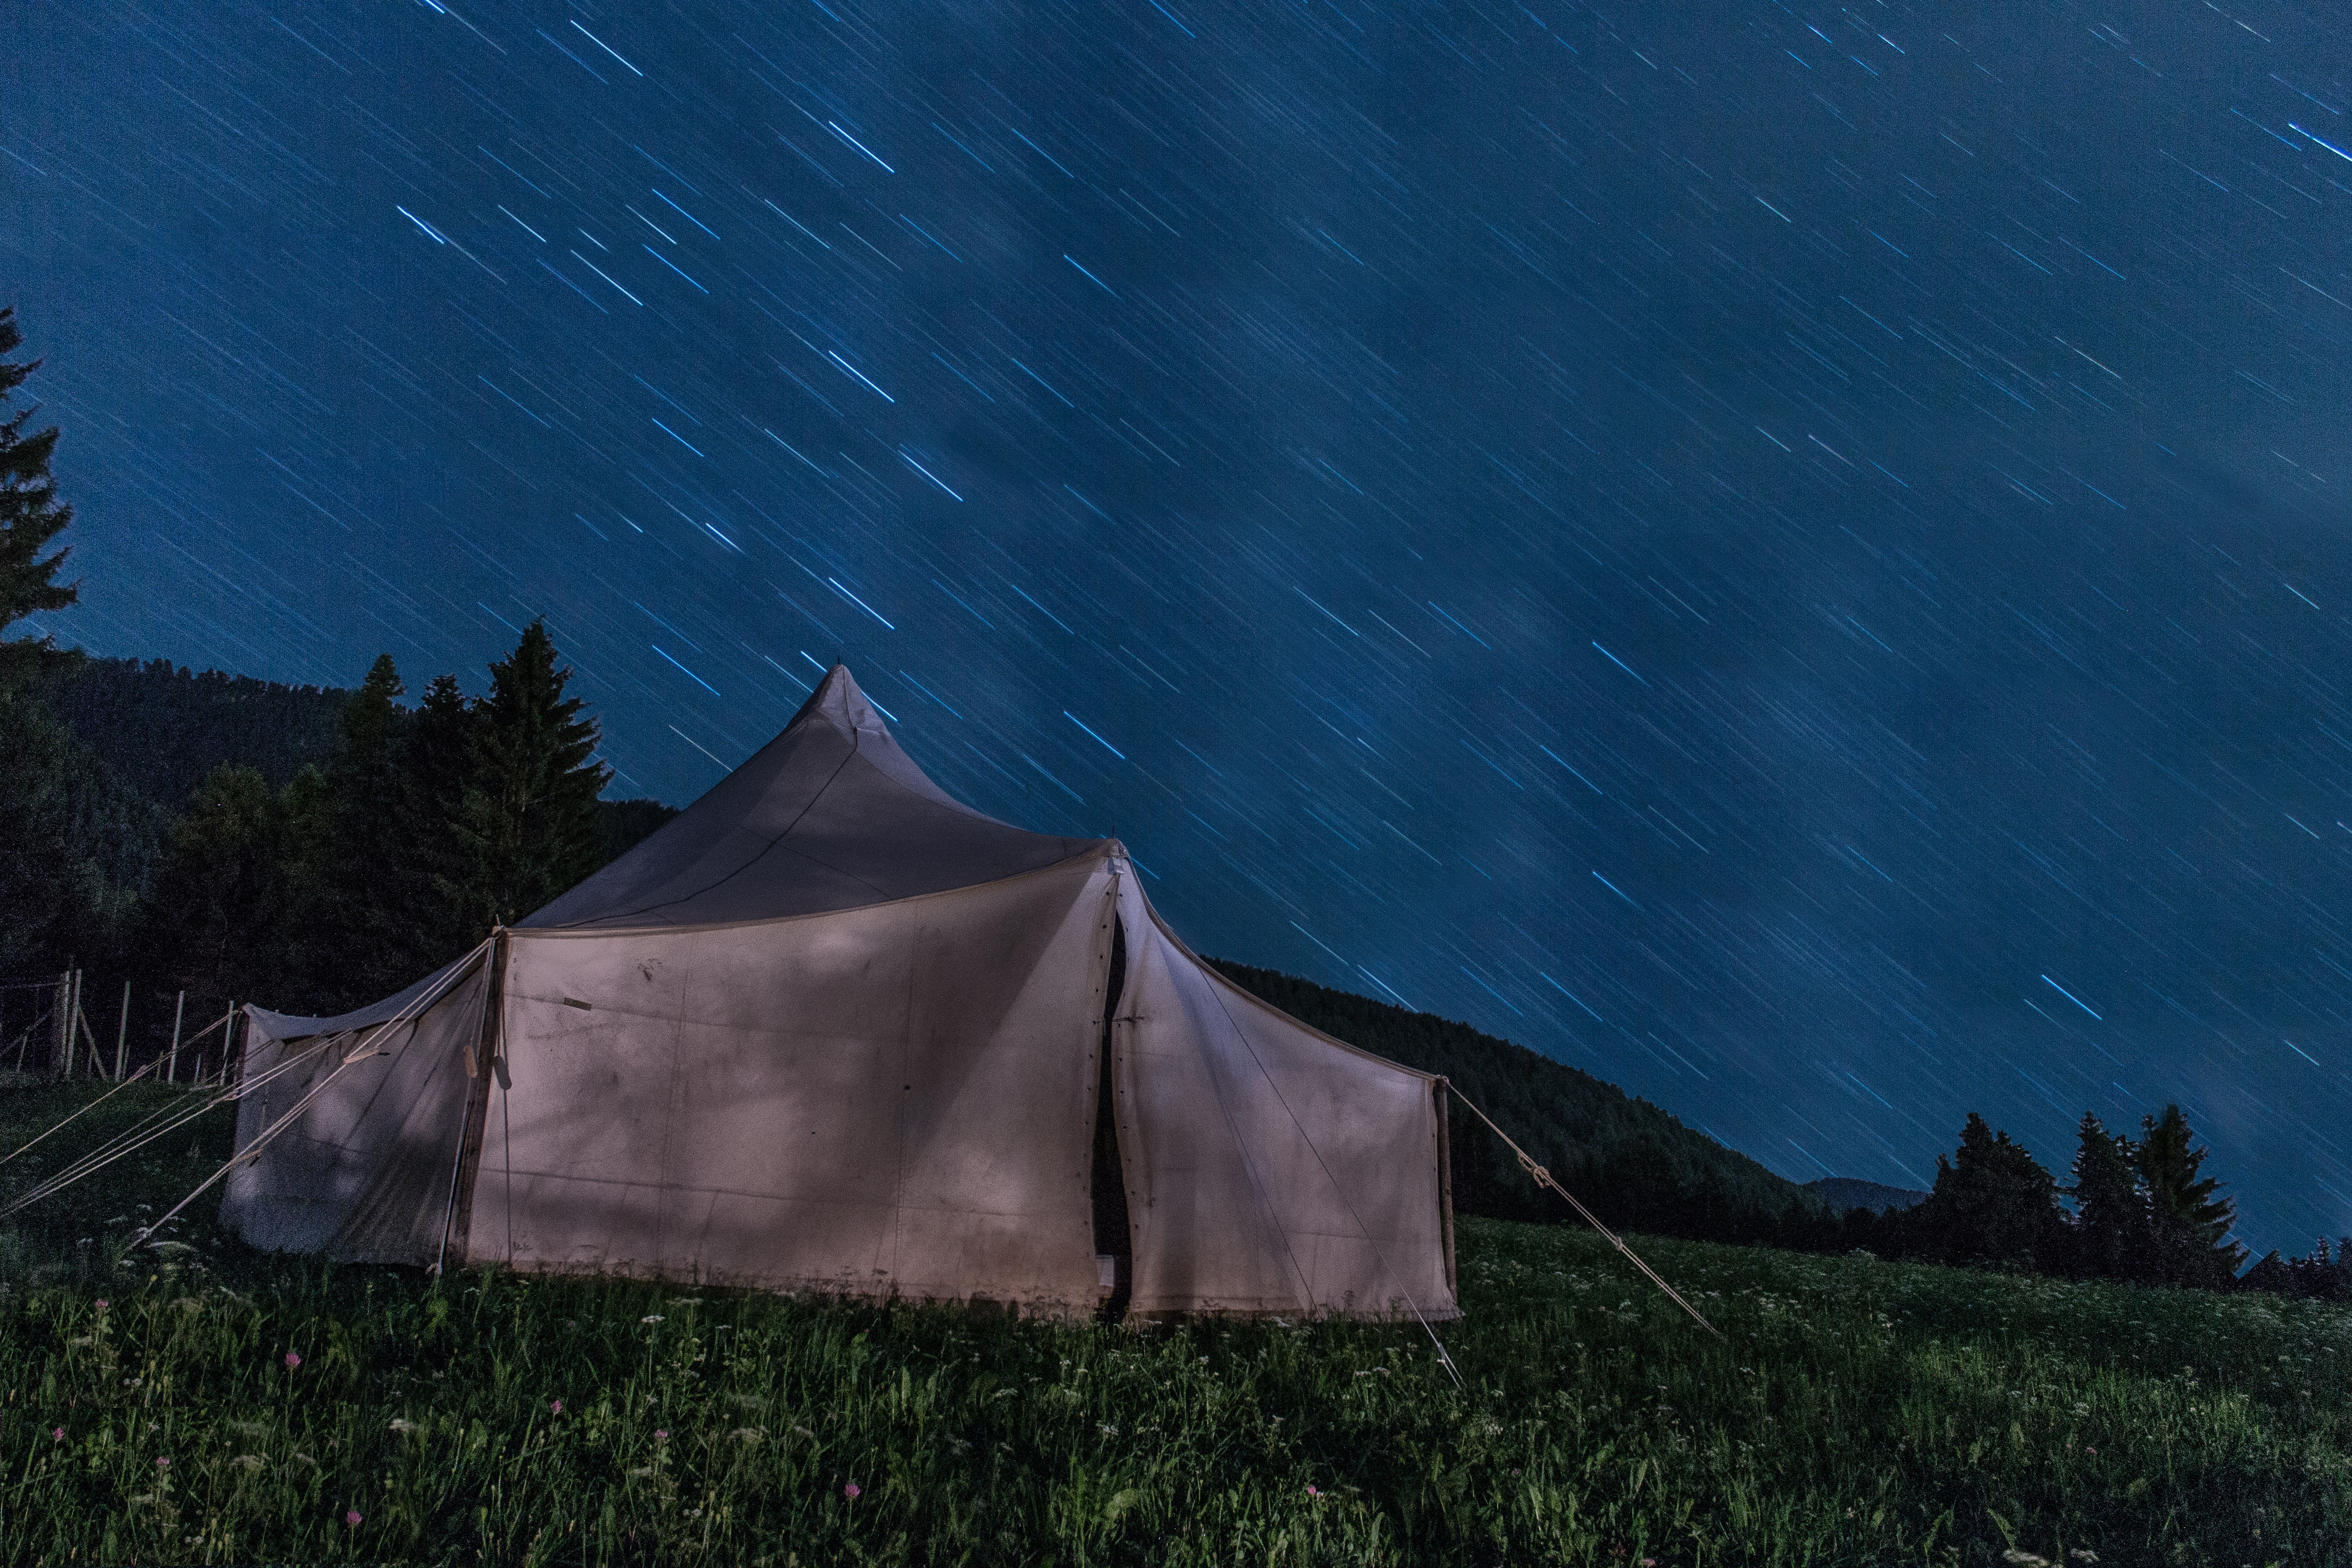 Brown tent on green grass during night time photo